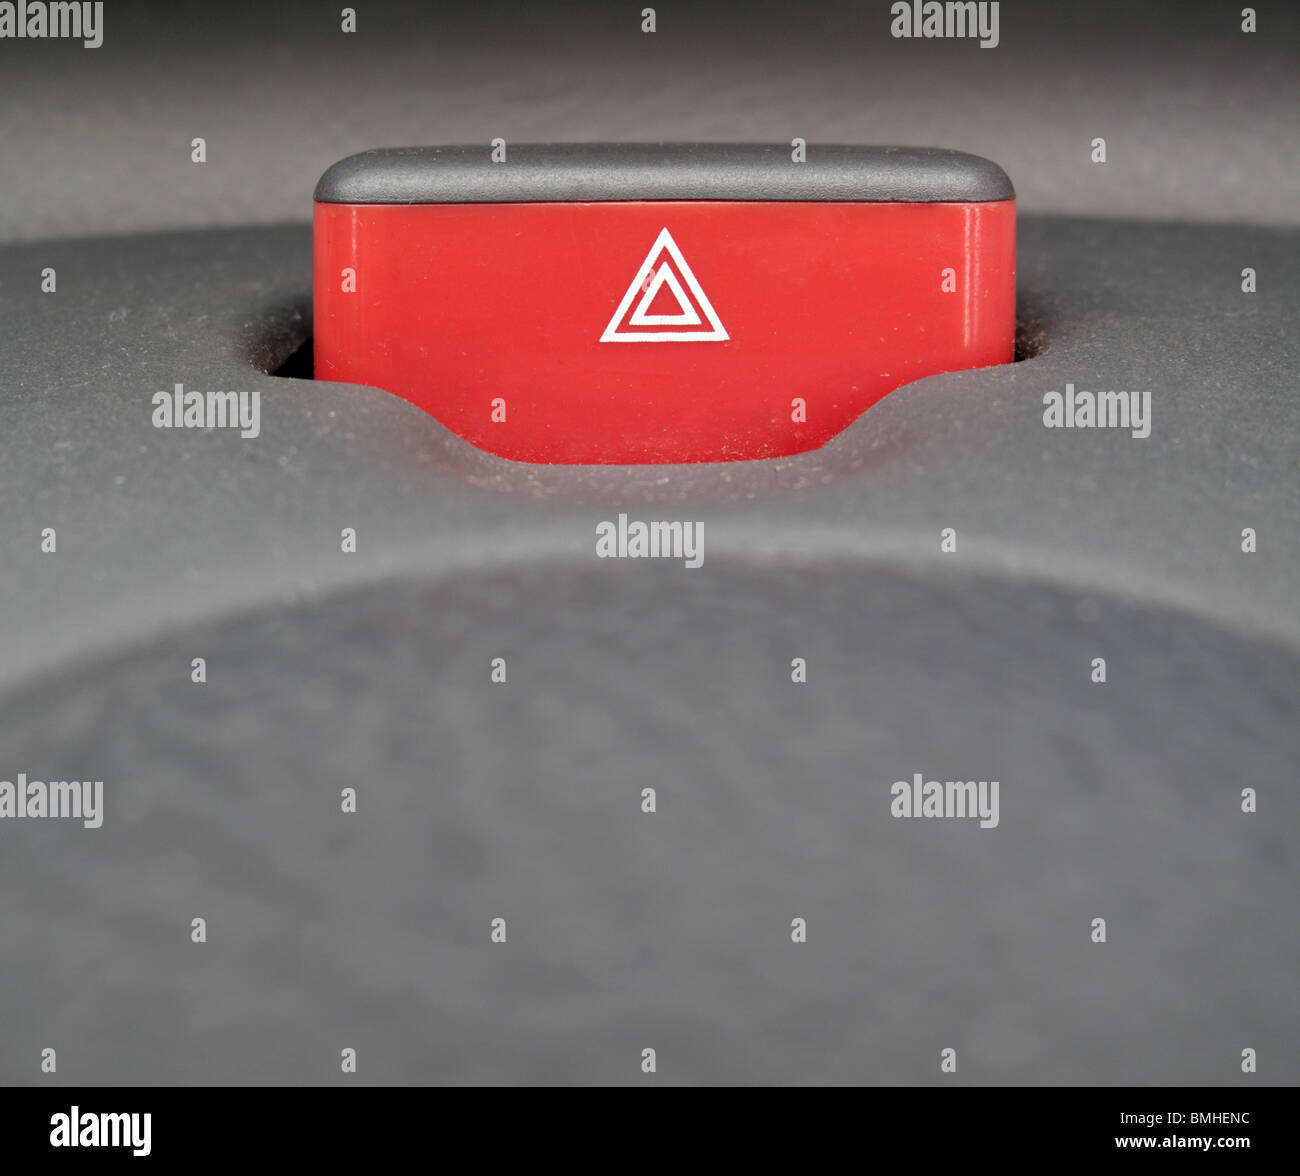 Hazard Button Stock Photos Images Alamy Panel Mounted Push On Switch Red Car Dashboard For Emergency Breakdown Lights Image